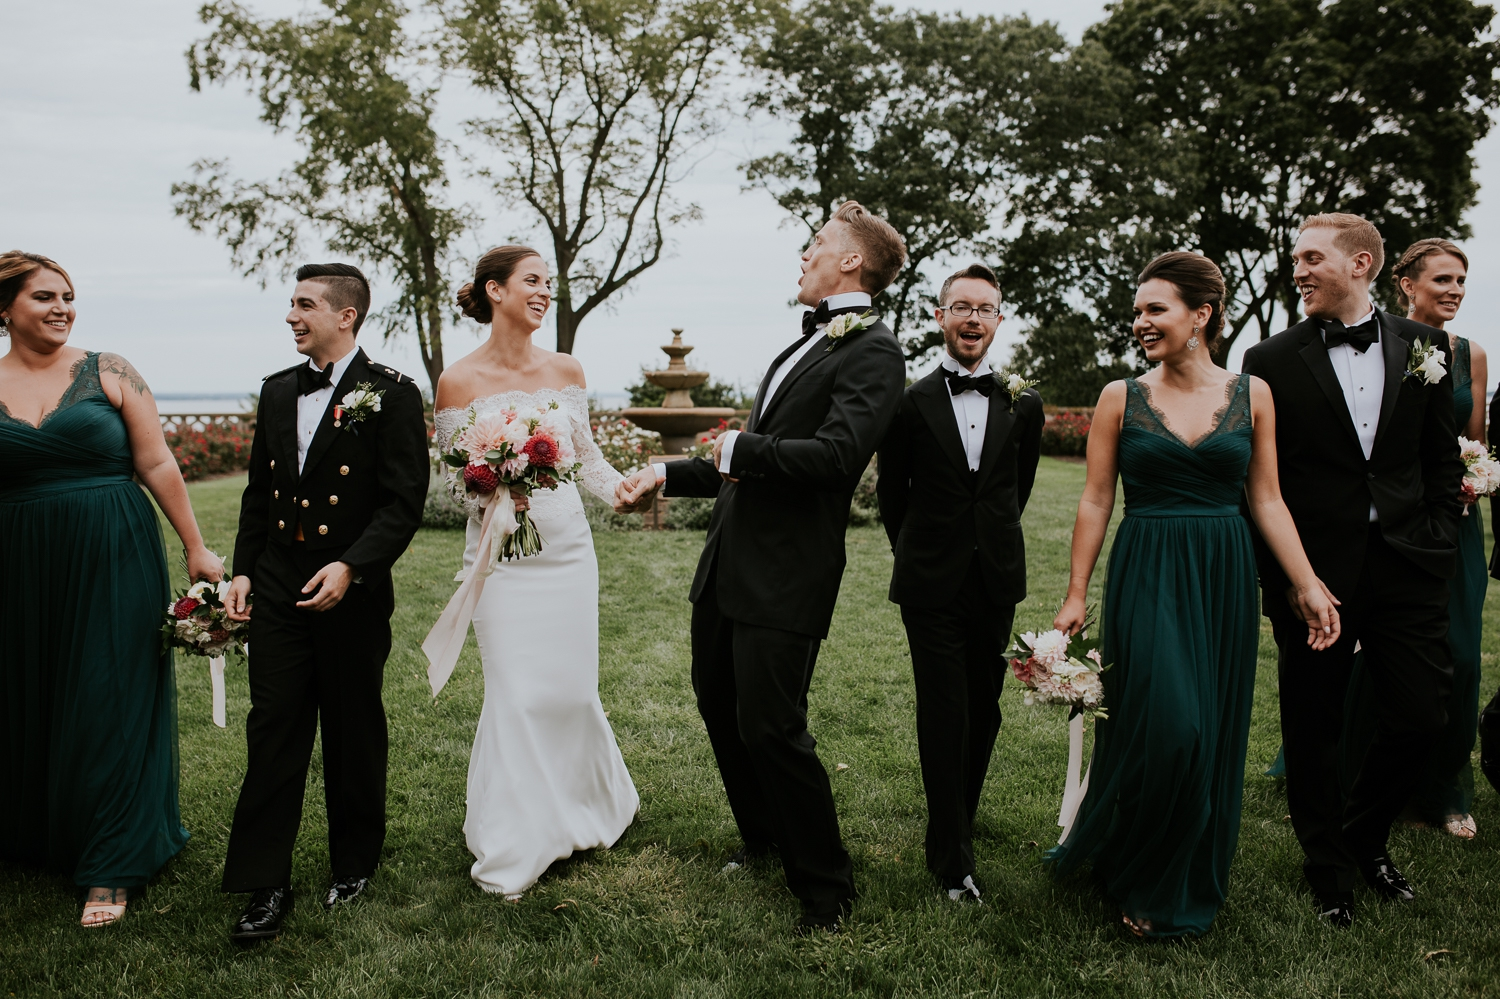 hempstead_house_new_york_wedding_photographer 47.jpg